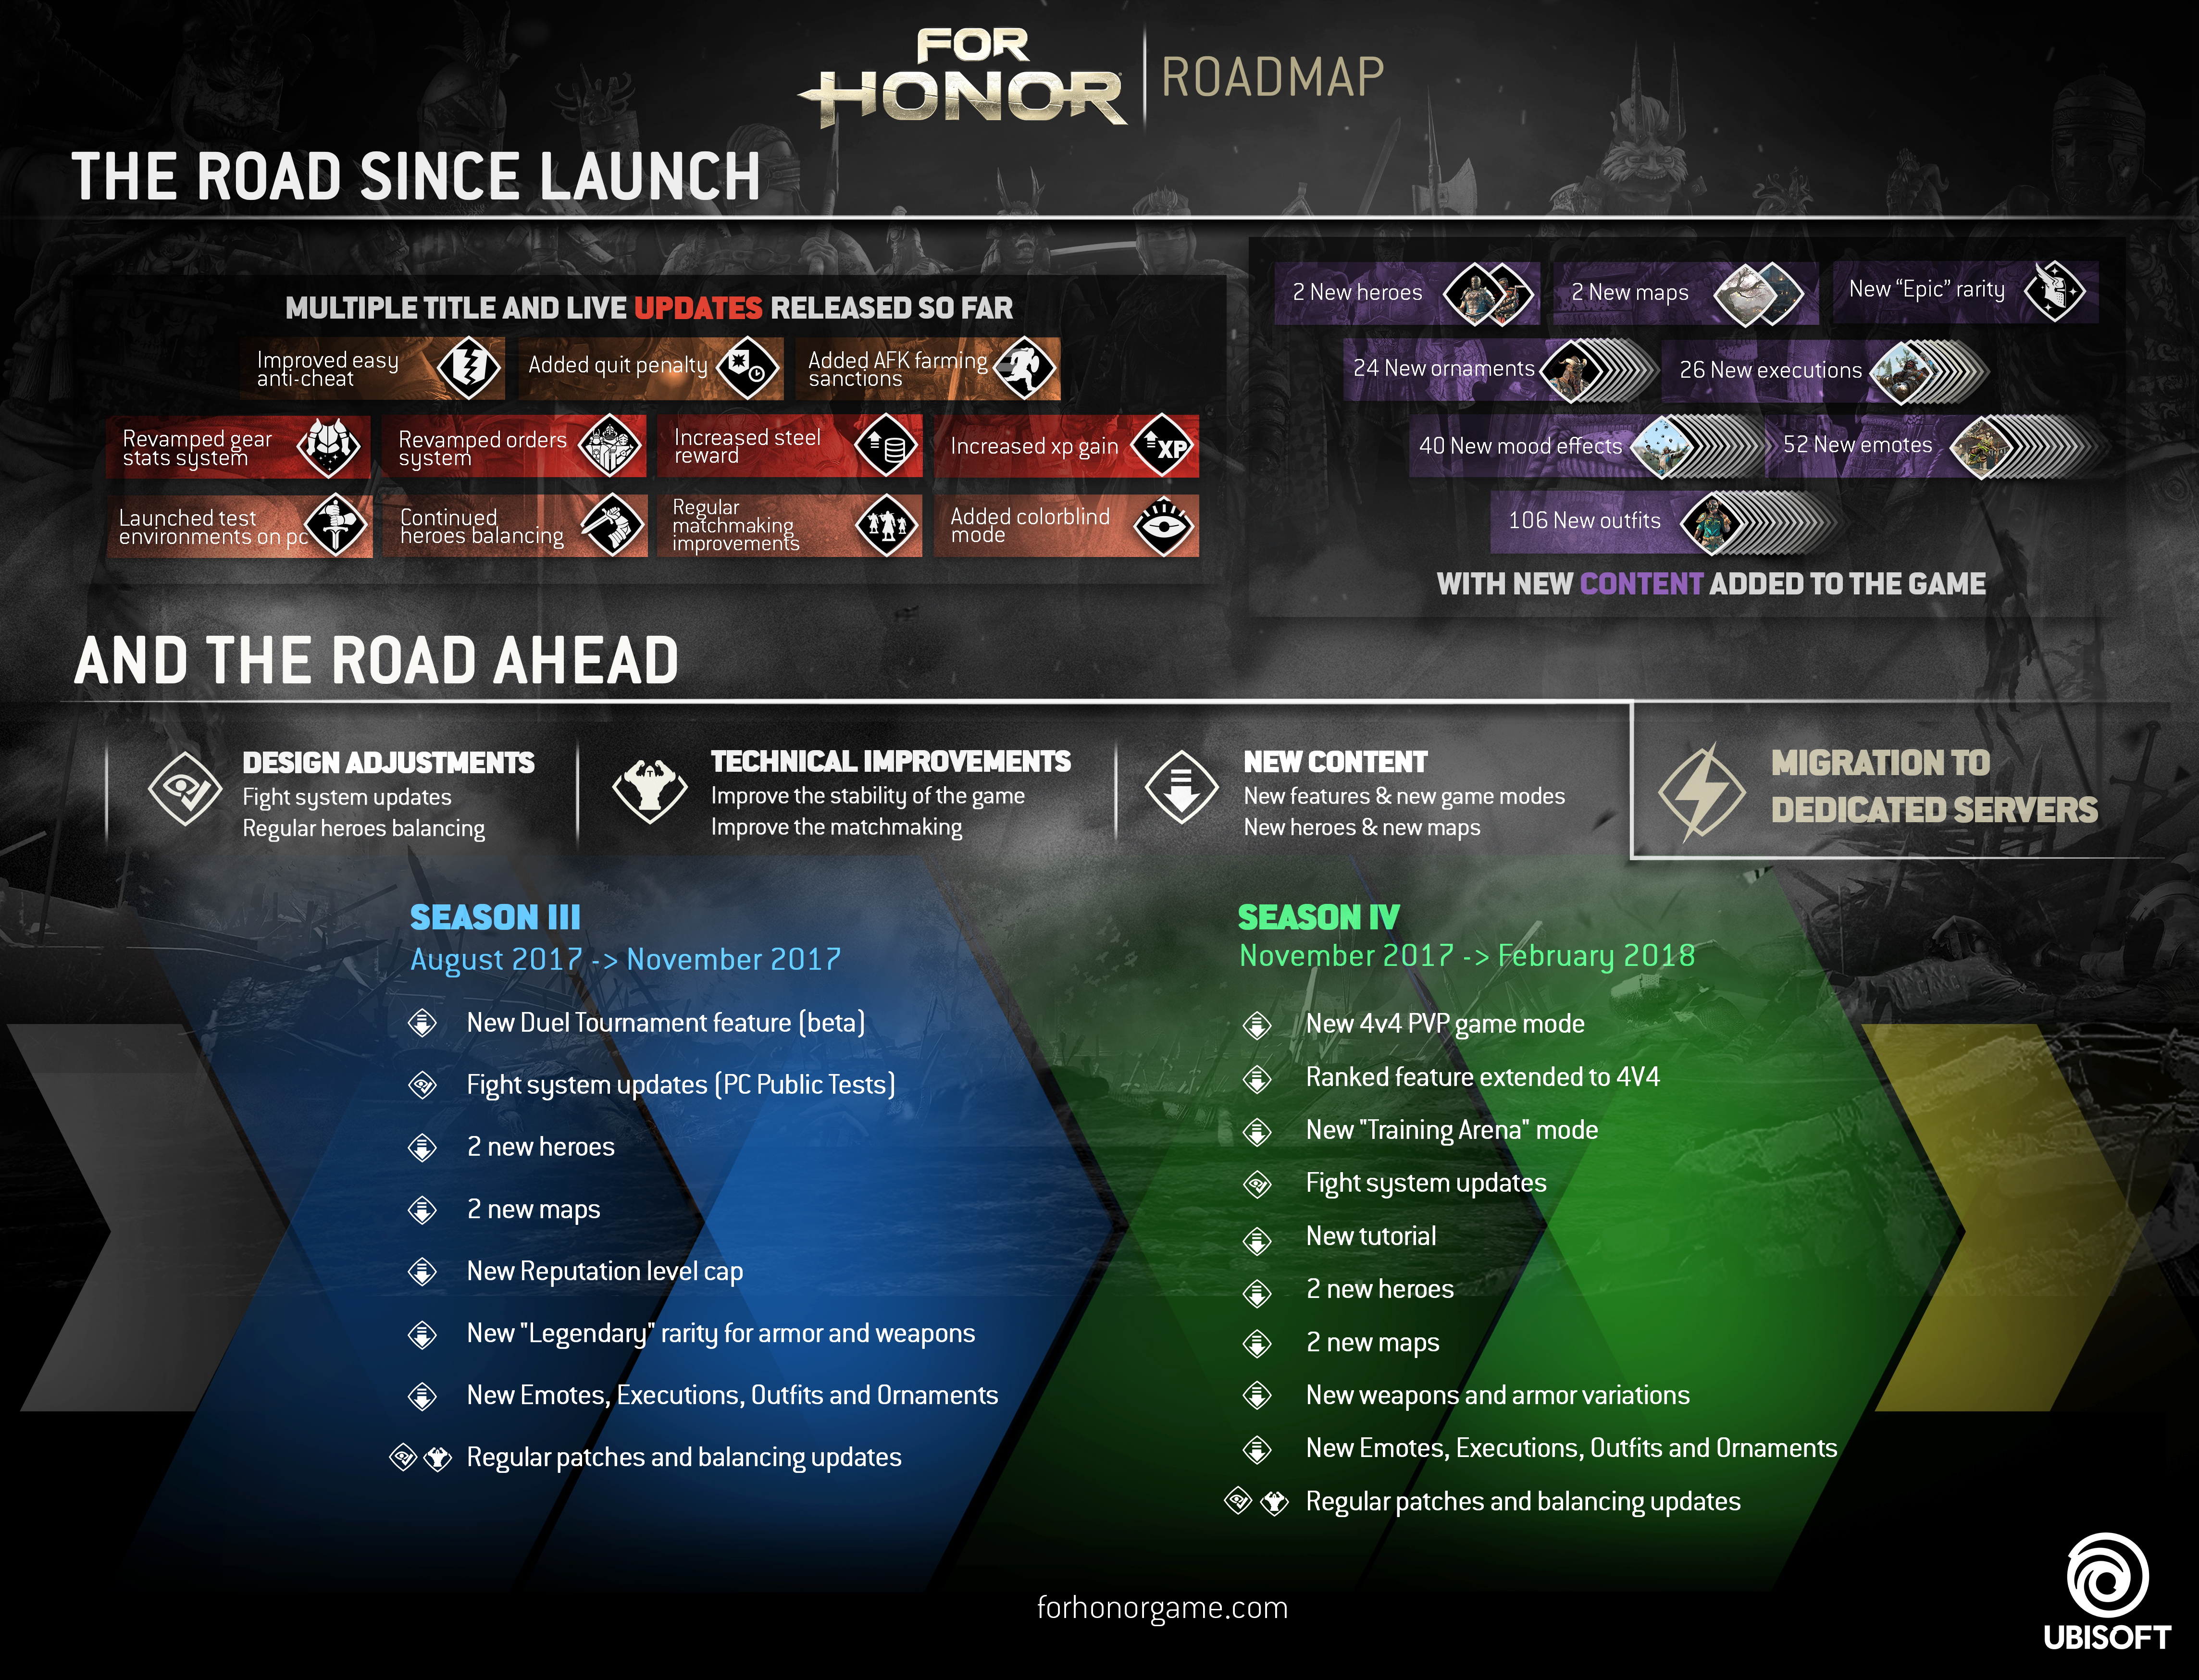 For Honor Finally Adding Dedicated Servers